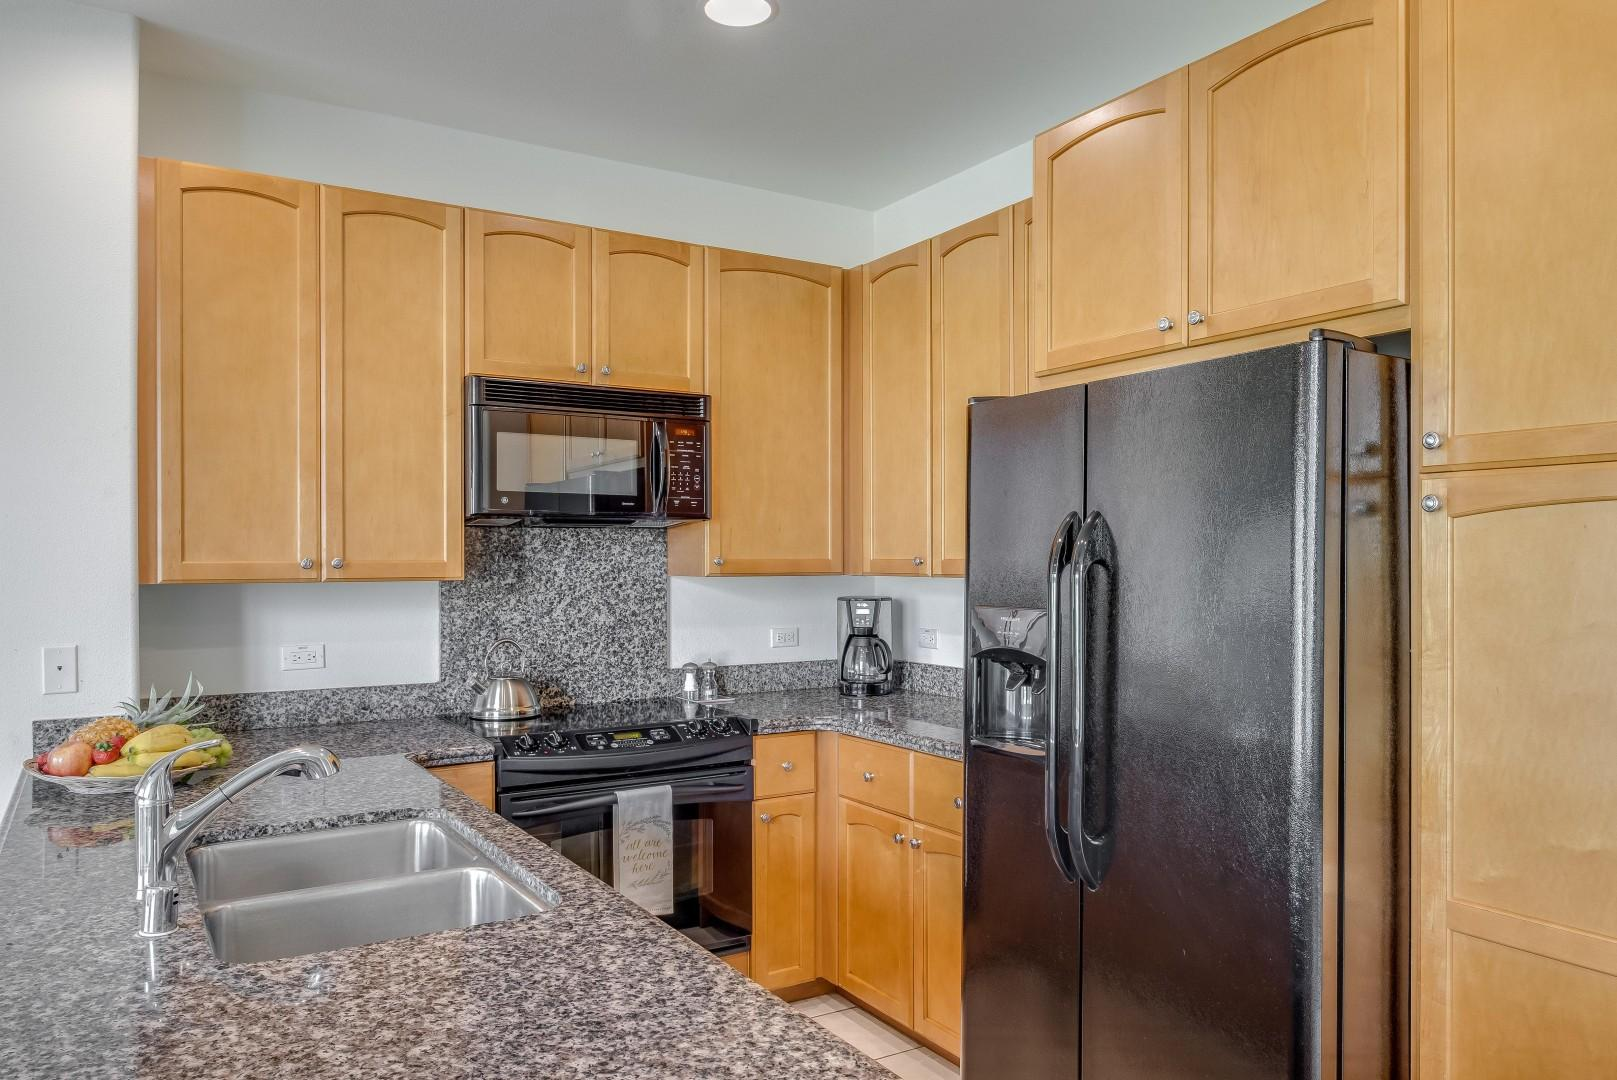 Full Kitchen w/ Granite Countertops